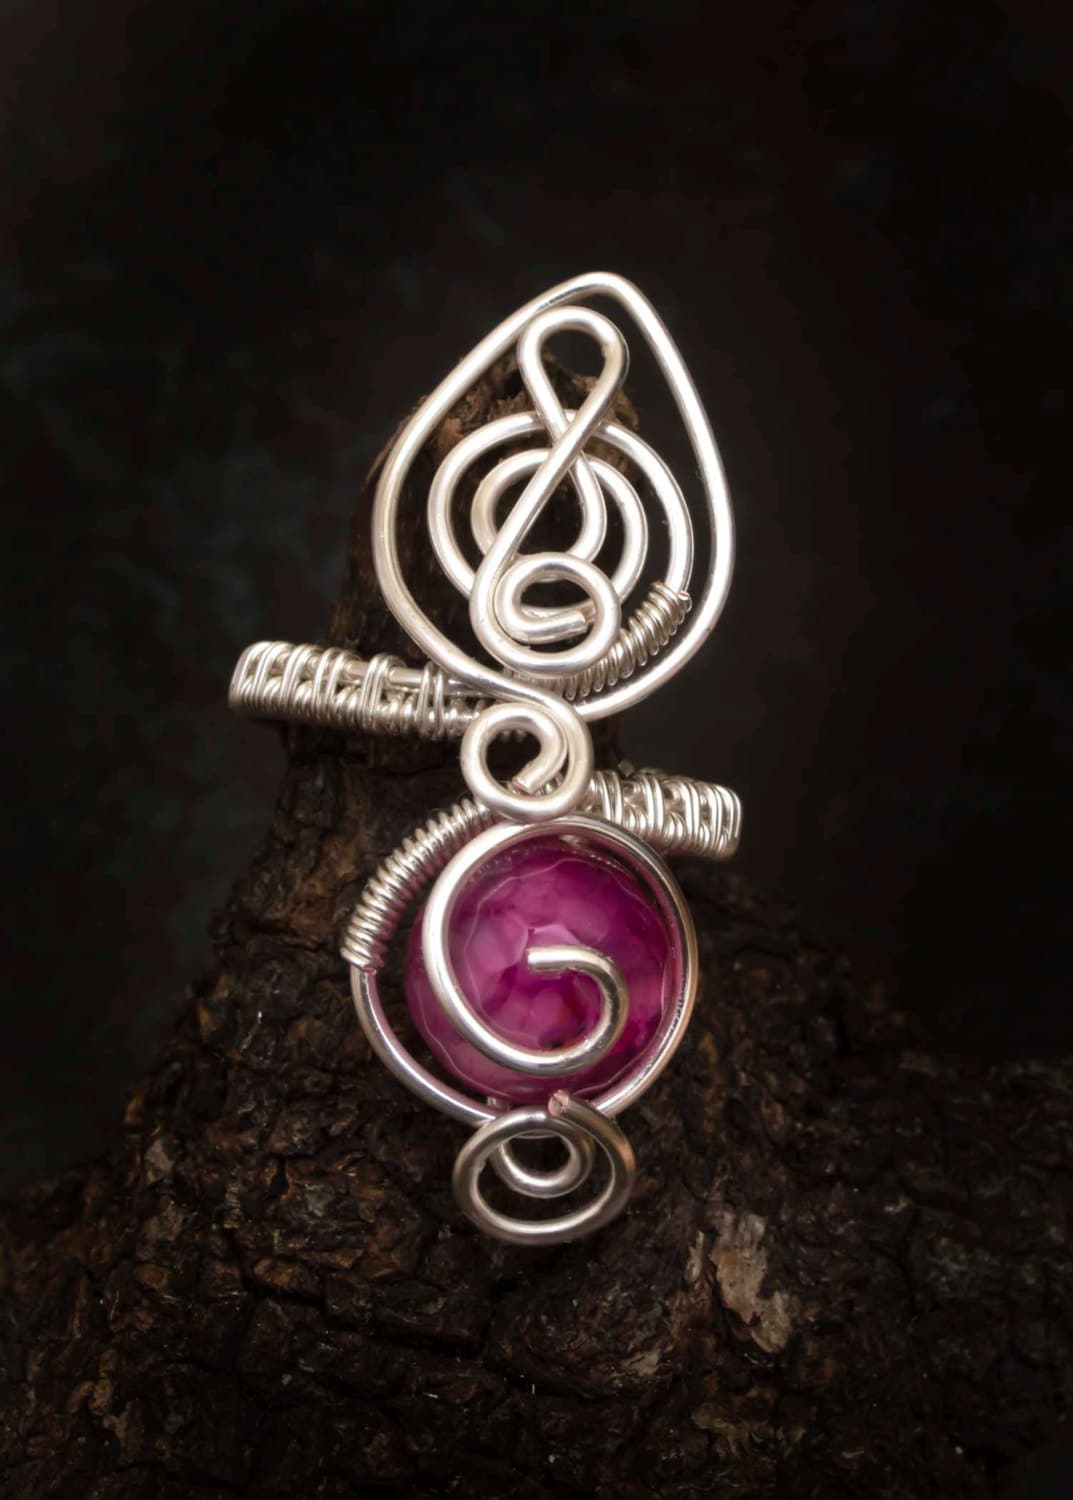 Silver ringadjustable wire wrapped ring.Roseo dragon vein agate ring